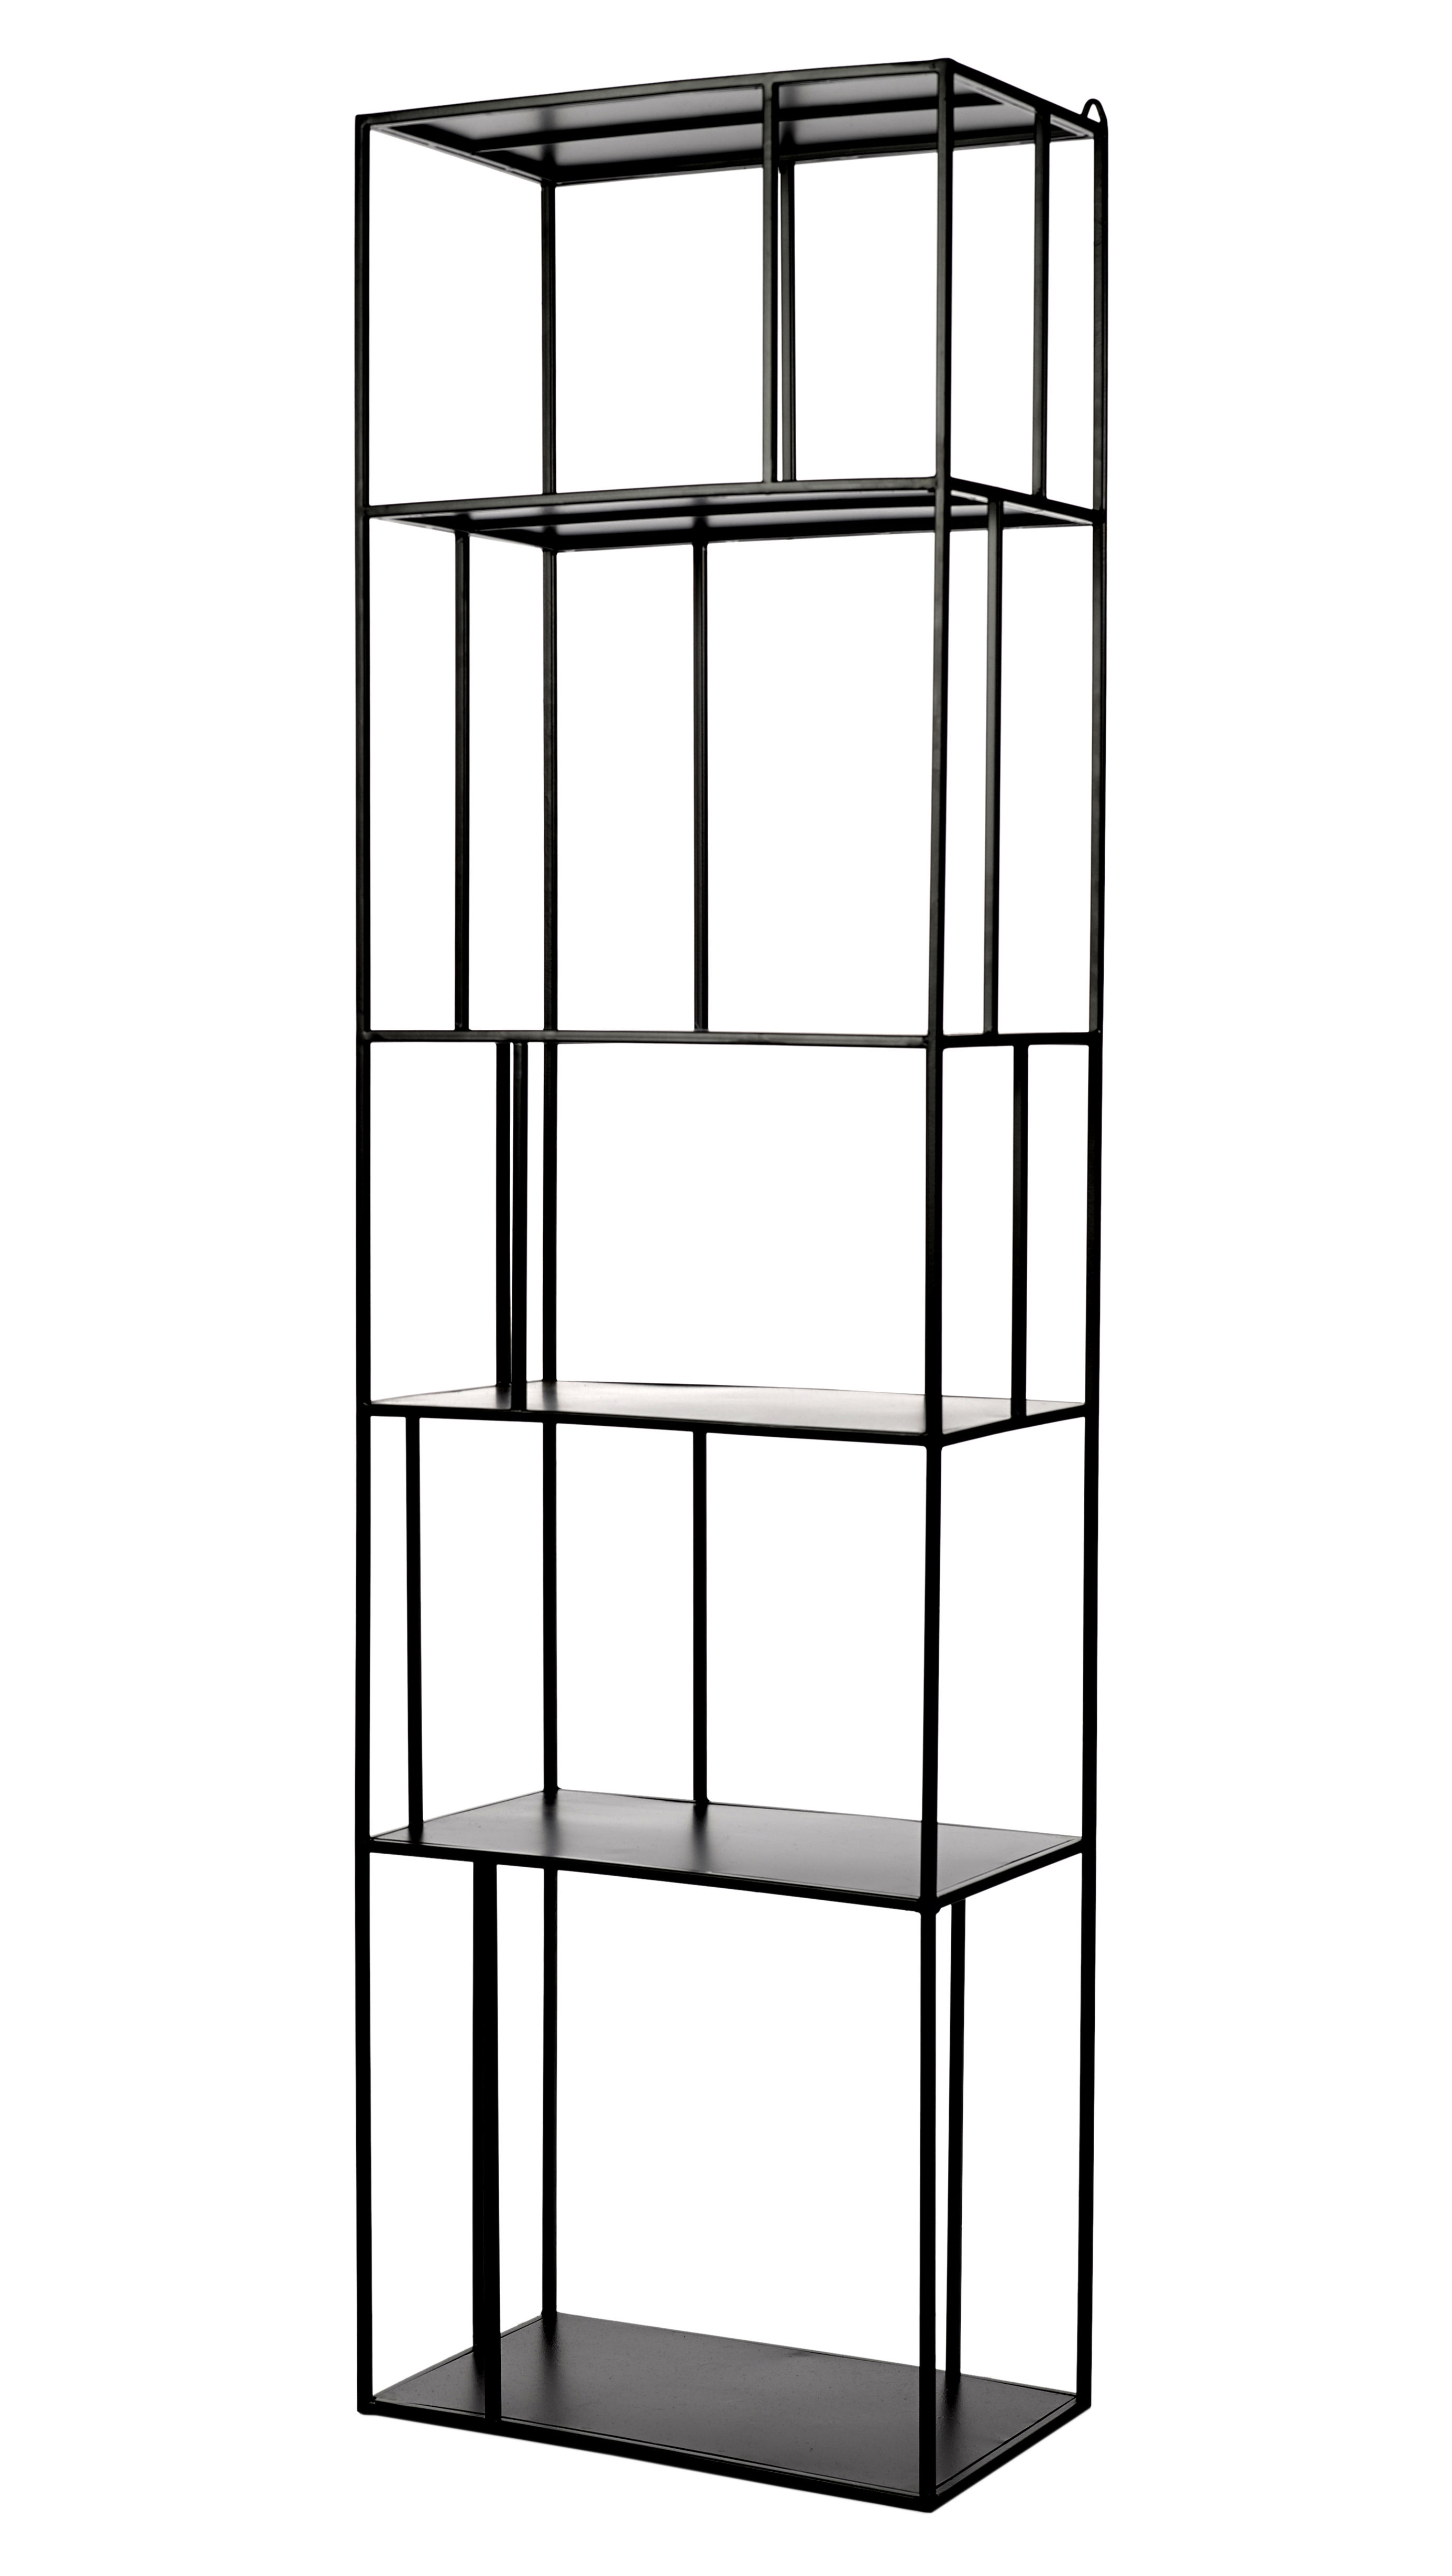 Furniture - Bookcases & Bookshelves - Metal Tall Single Shelf - / L 50 x H 179 cm by Pols Potten - L 50 cm / Black - Metal and epoxy